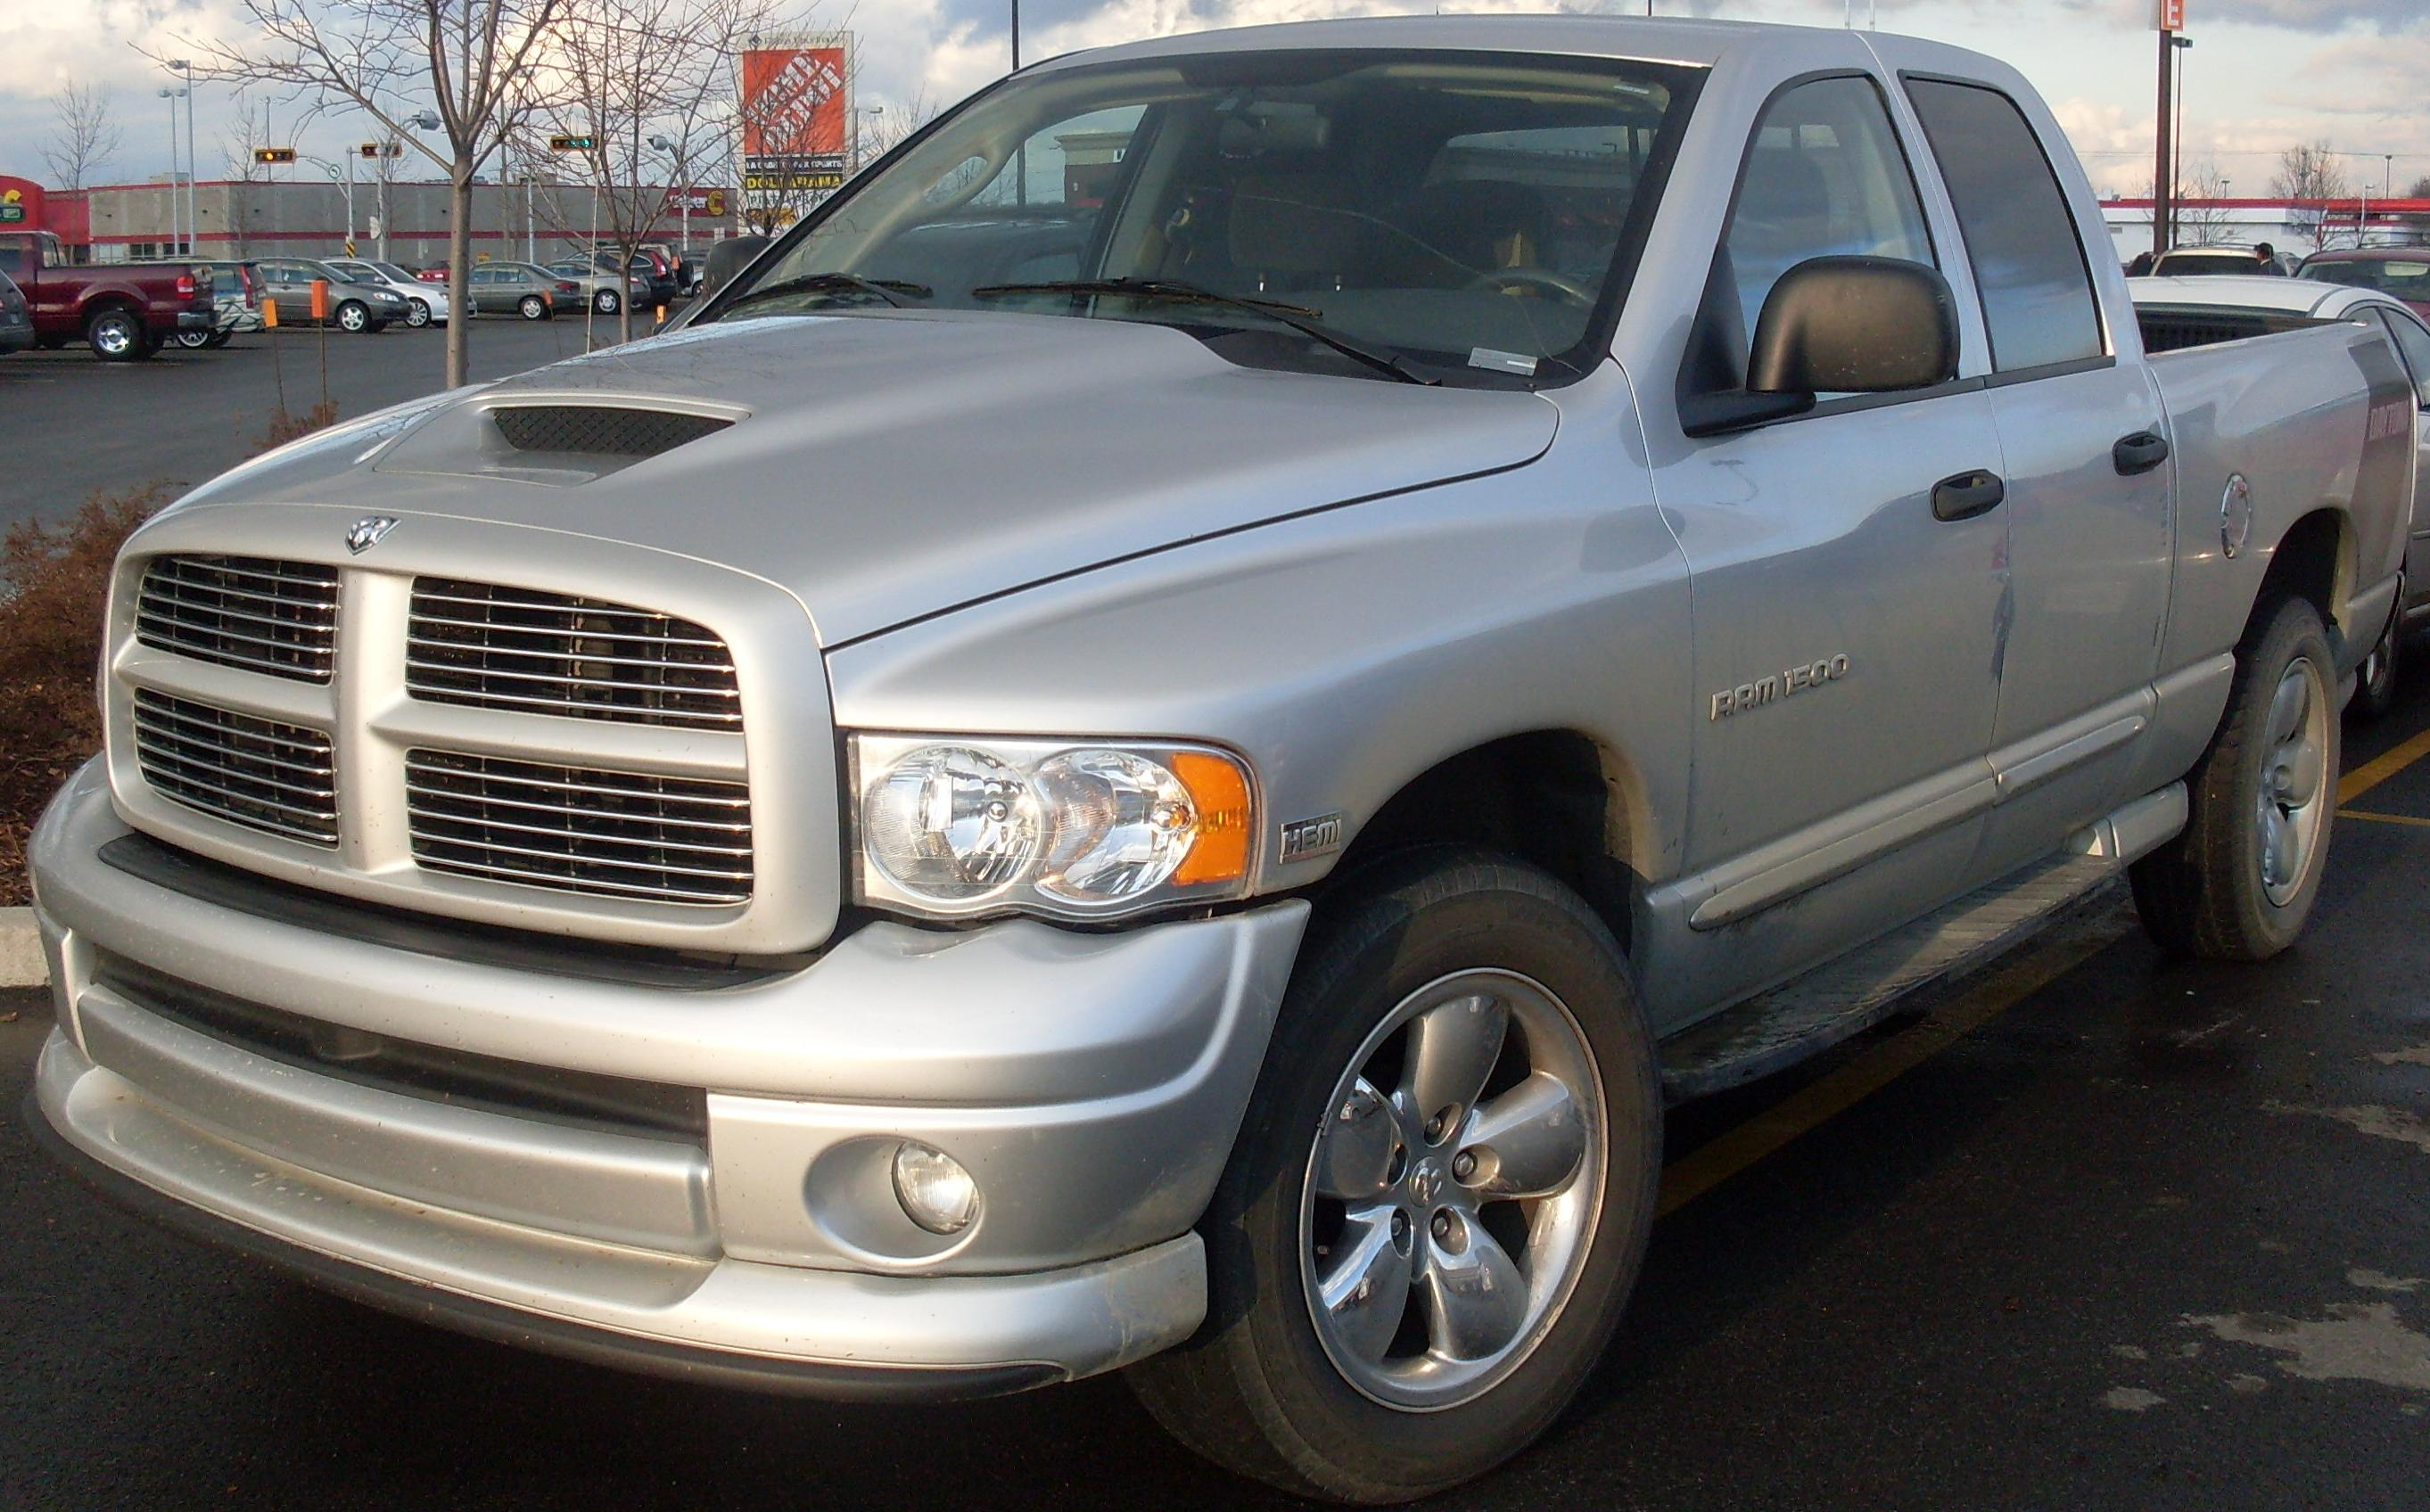 Dodge Ram Slt X Wiring Diagram on 93 buick century wiring diagram, 06 dodge ram wiring diagram, 03 dodge ram wiring diagram, 02 dodge ram 2500 wiring diagram, 02 dodge ram 1500 dash removal,